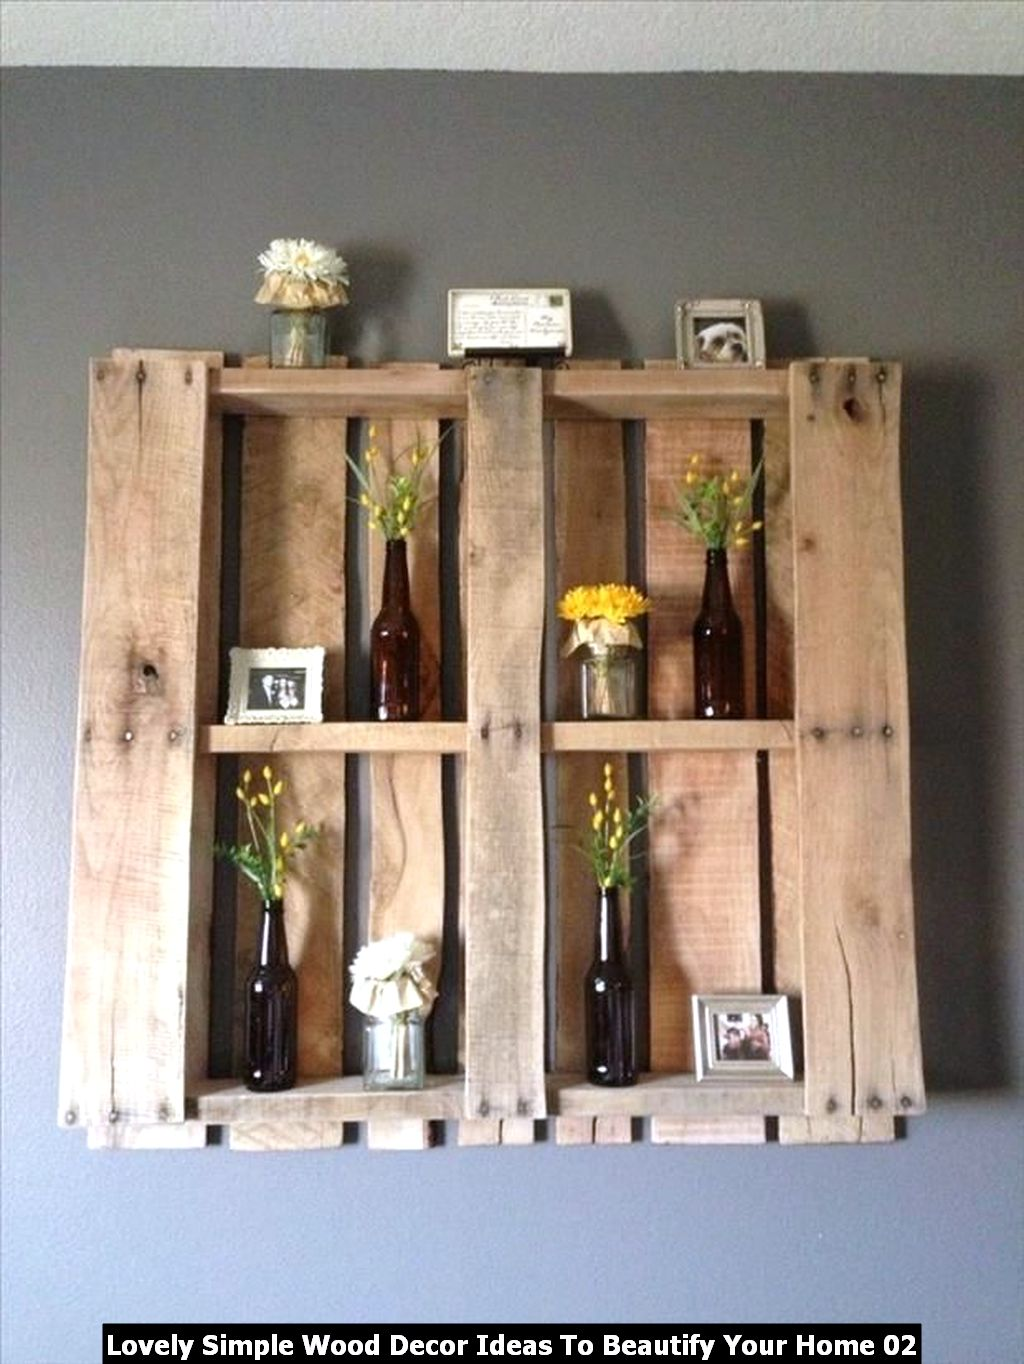 Lovely Simple Wood Decor Ideas To Beautify Your Home 02